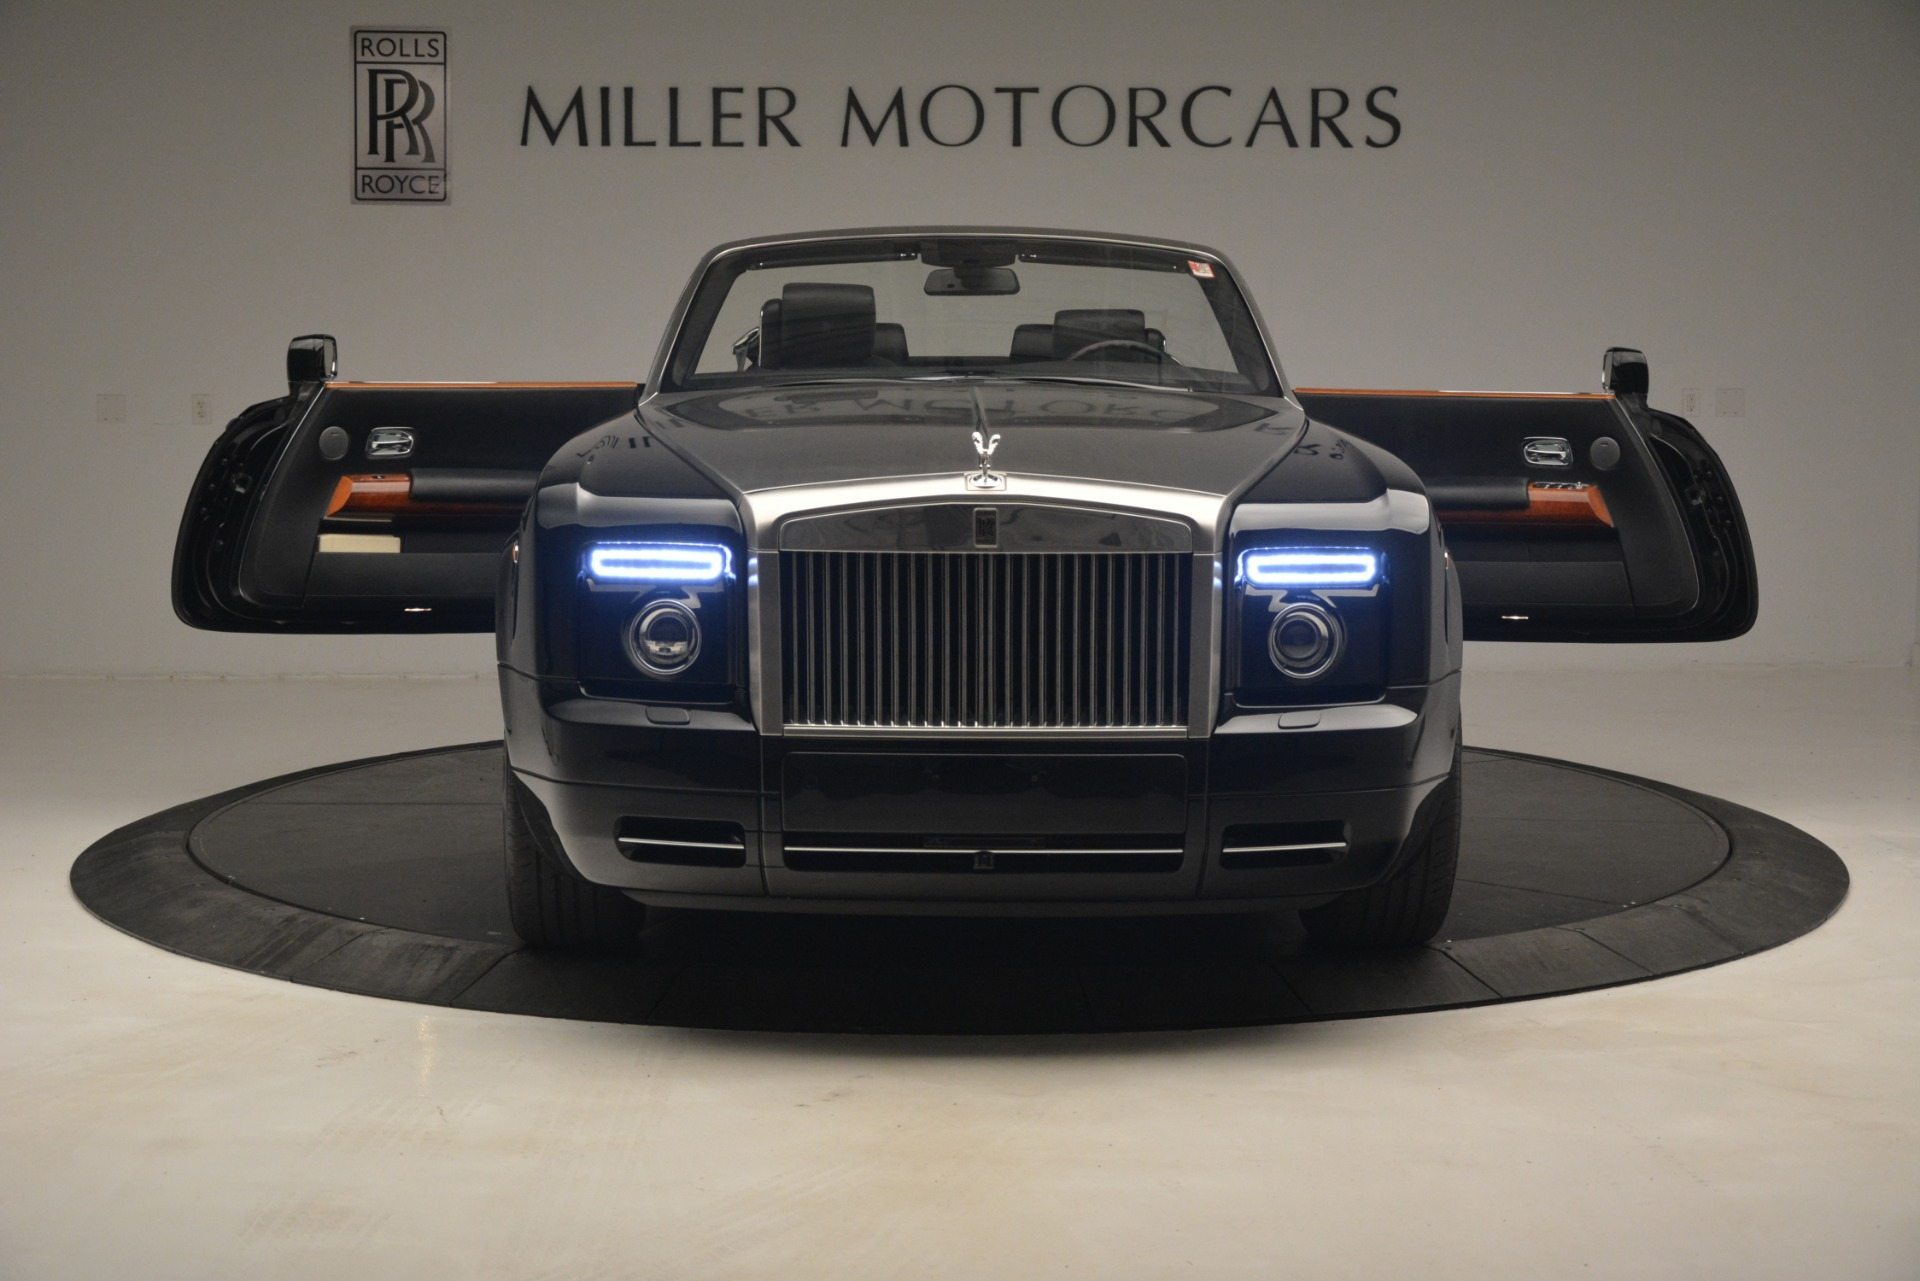 Used 2008 Rolls-Royce Phantom Drophead Coupe  For Sale In Westport, CT 3000_p18